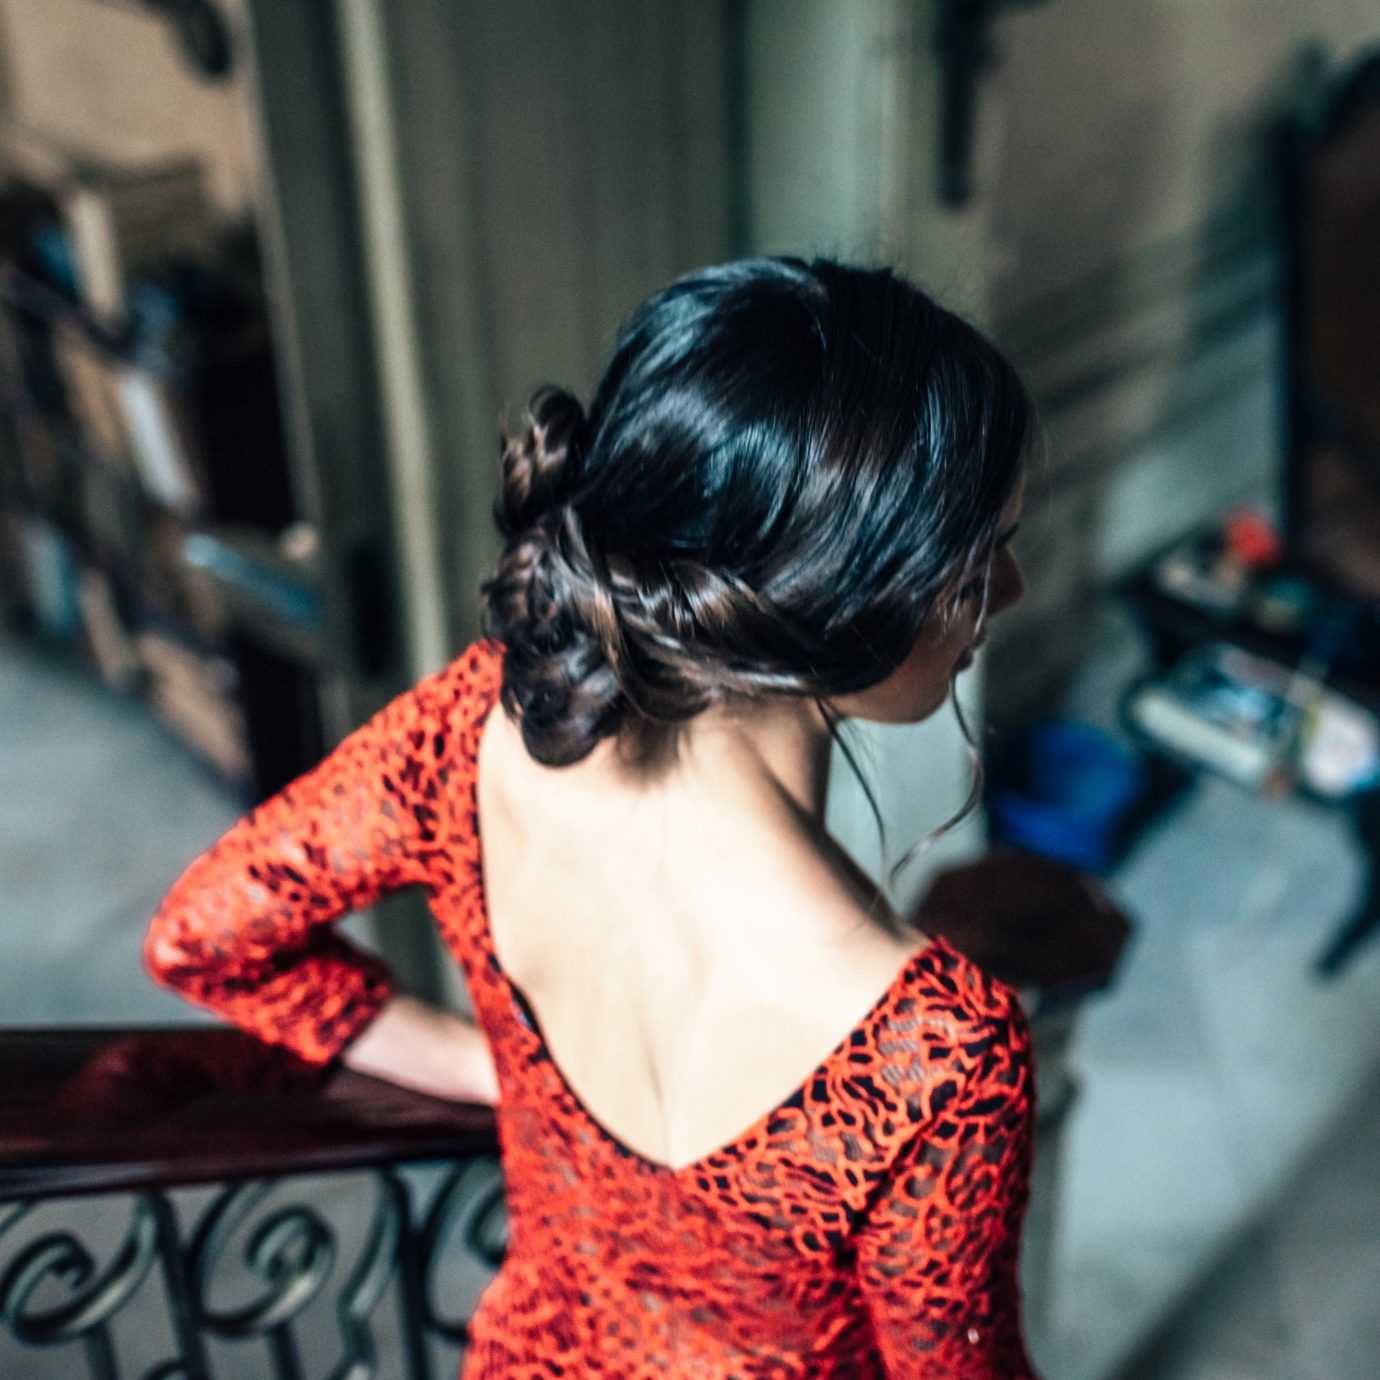 beautiful young cuban woman in red dress going down stairs in red dress